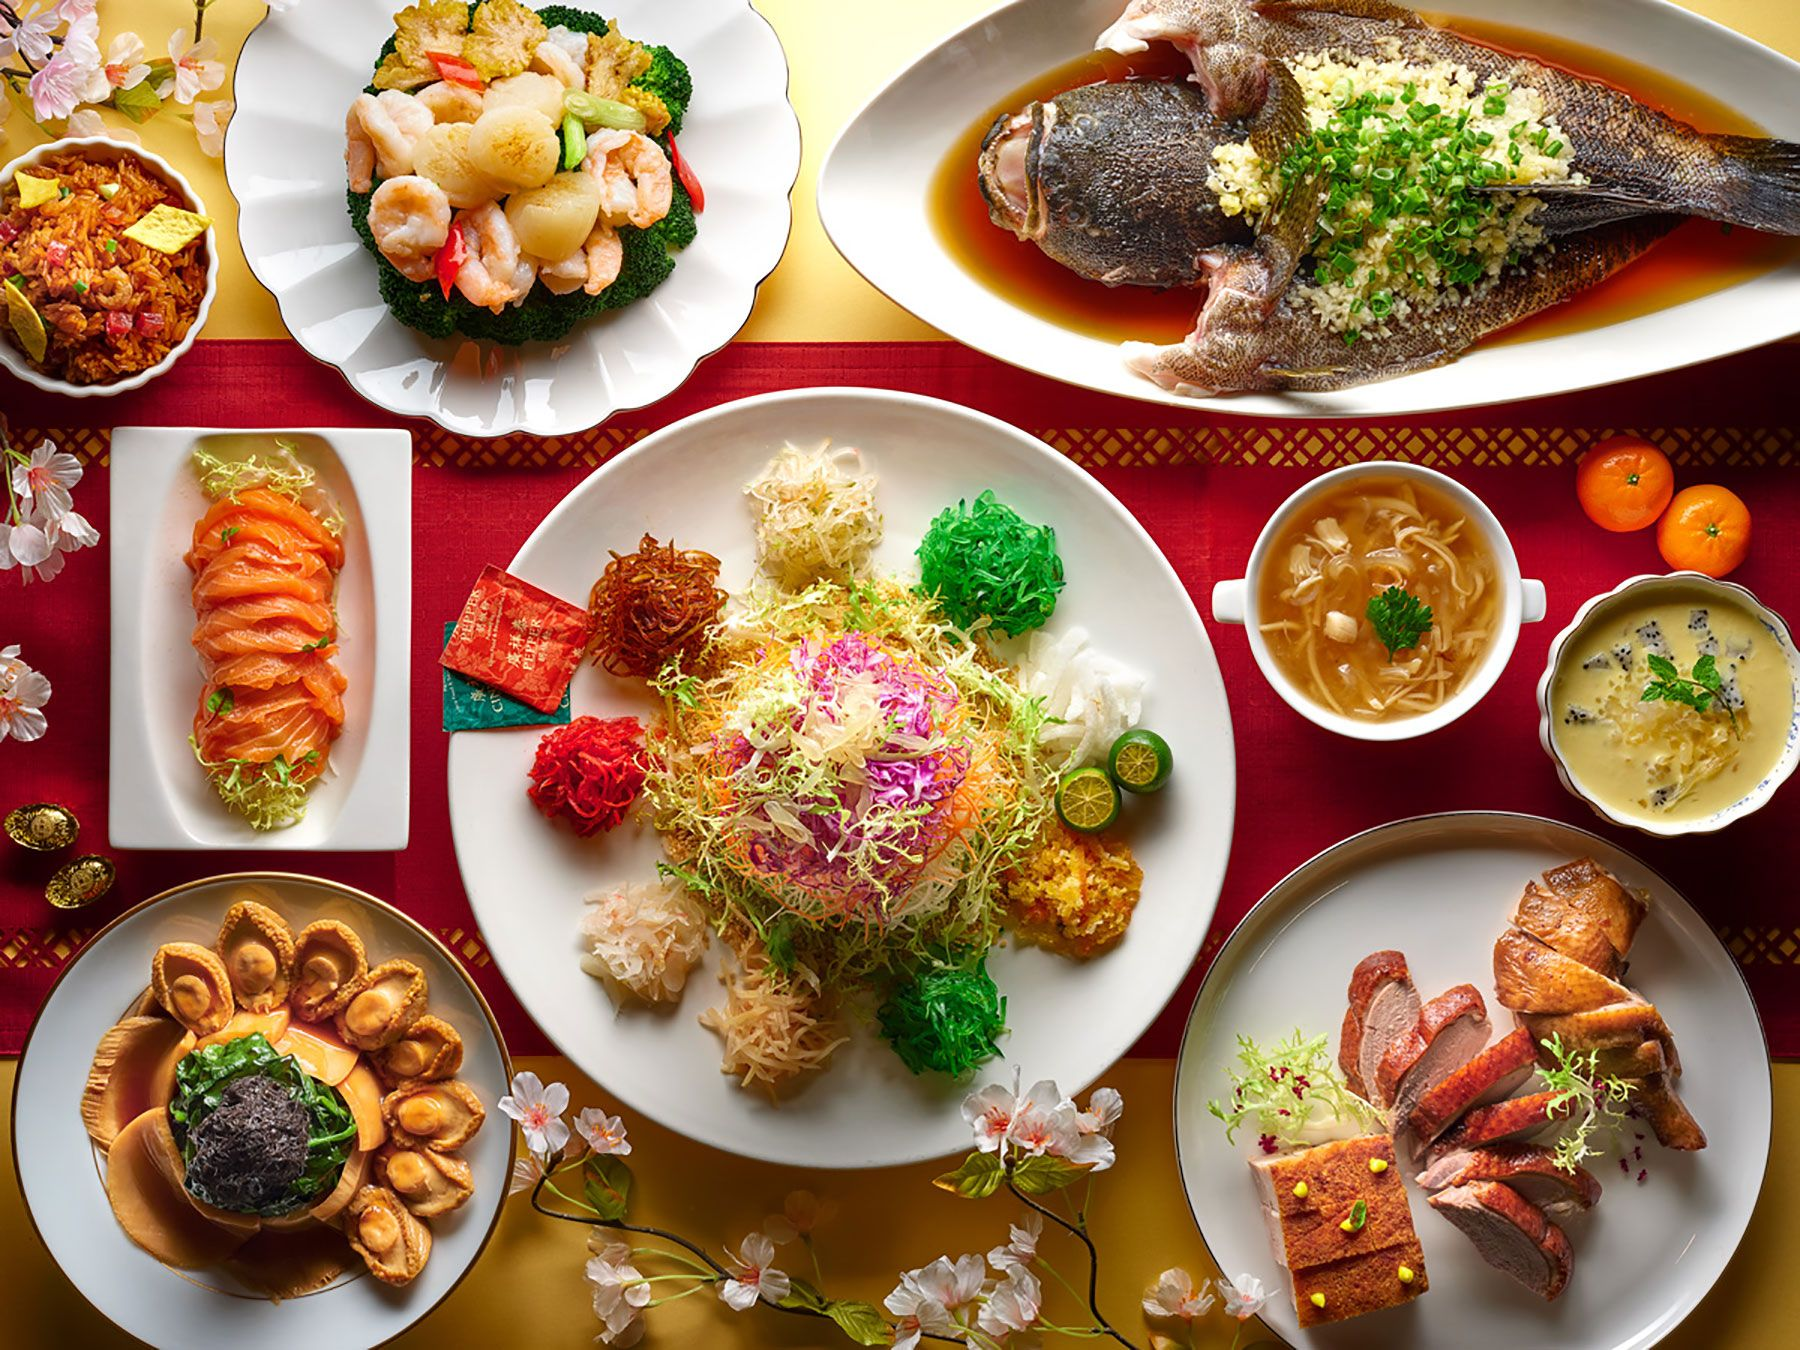 10 Restaurants Serving Up A Sumptuous Chinese New Year Feast